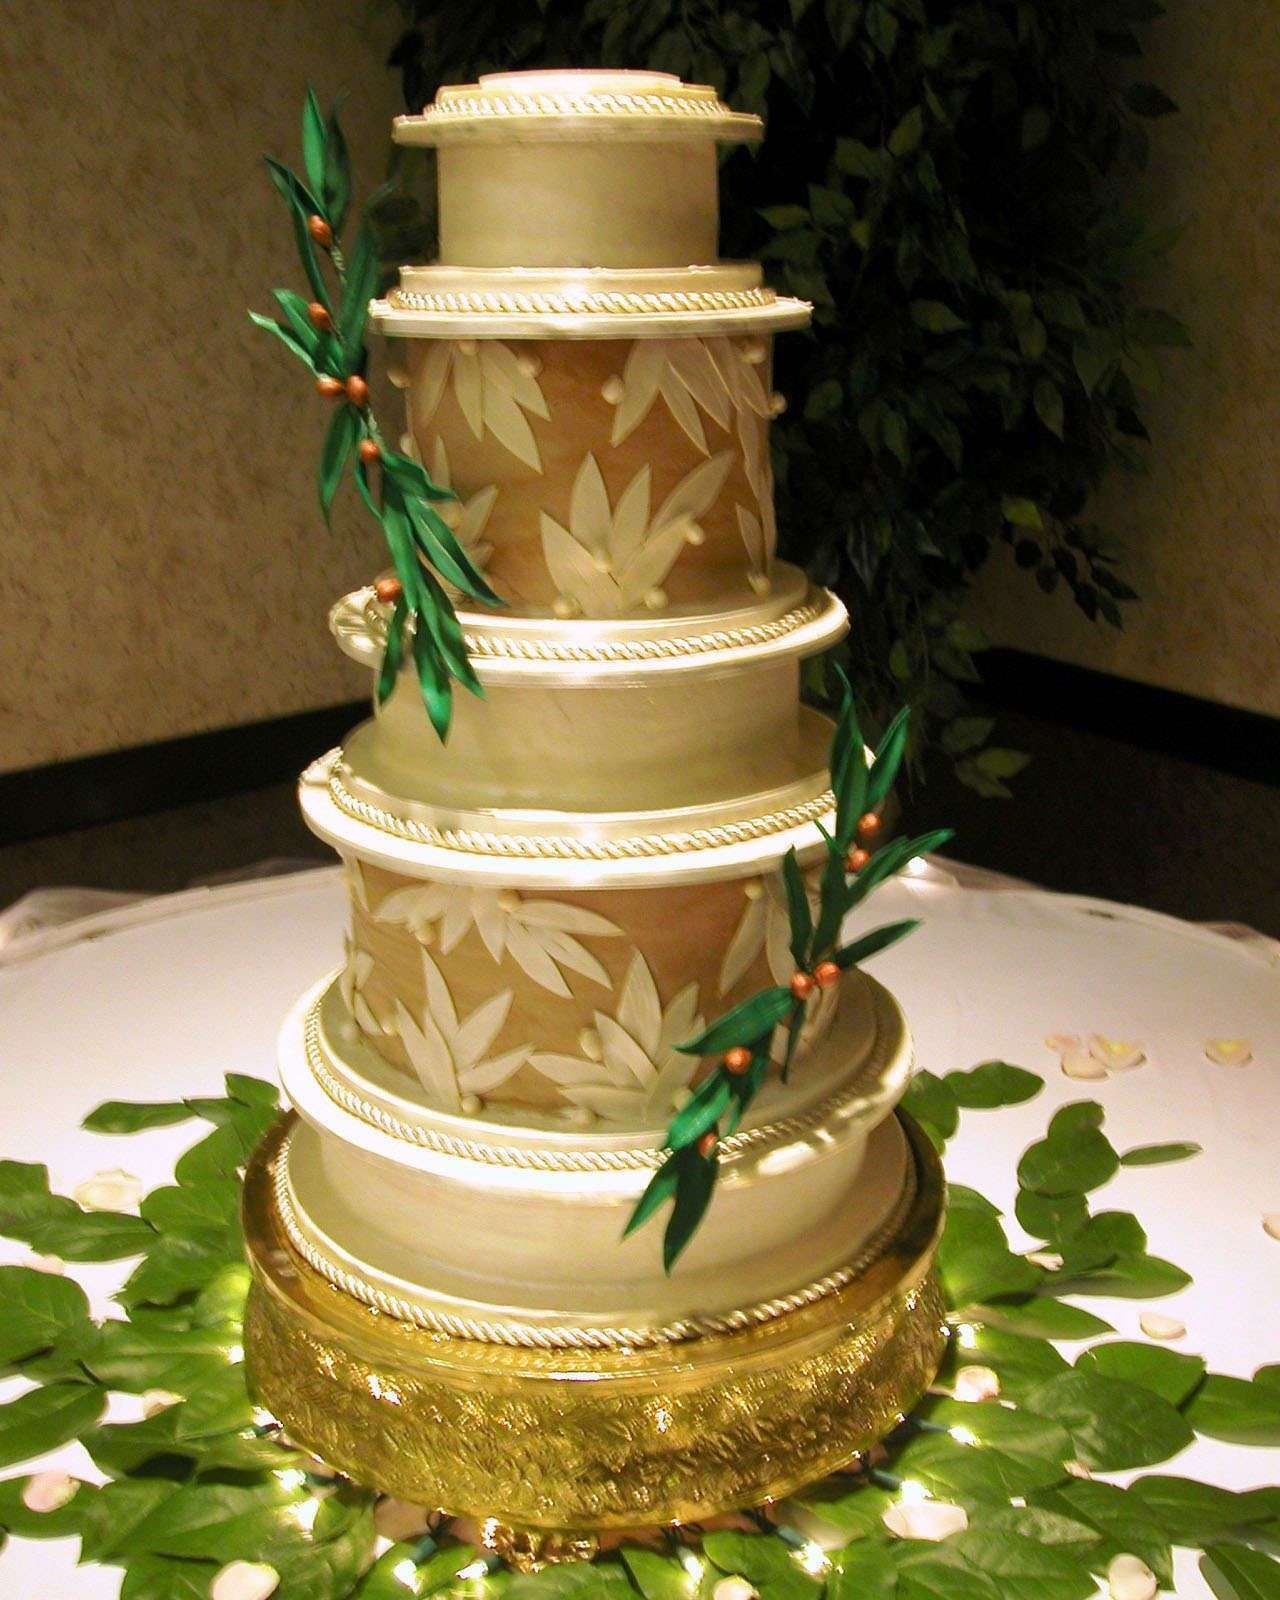 buttercream wedding cakes 1080p hd pictures | ideas for the house